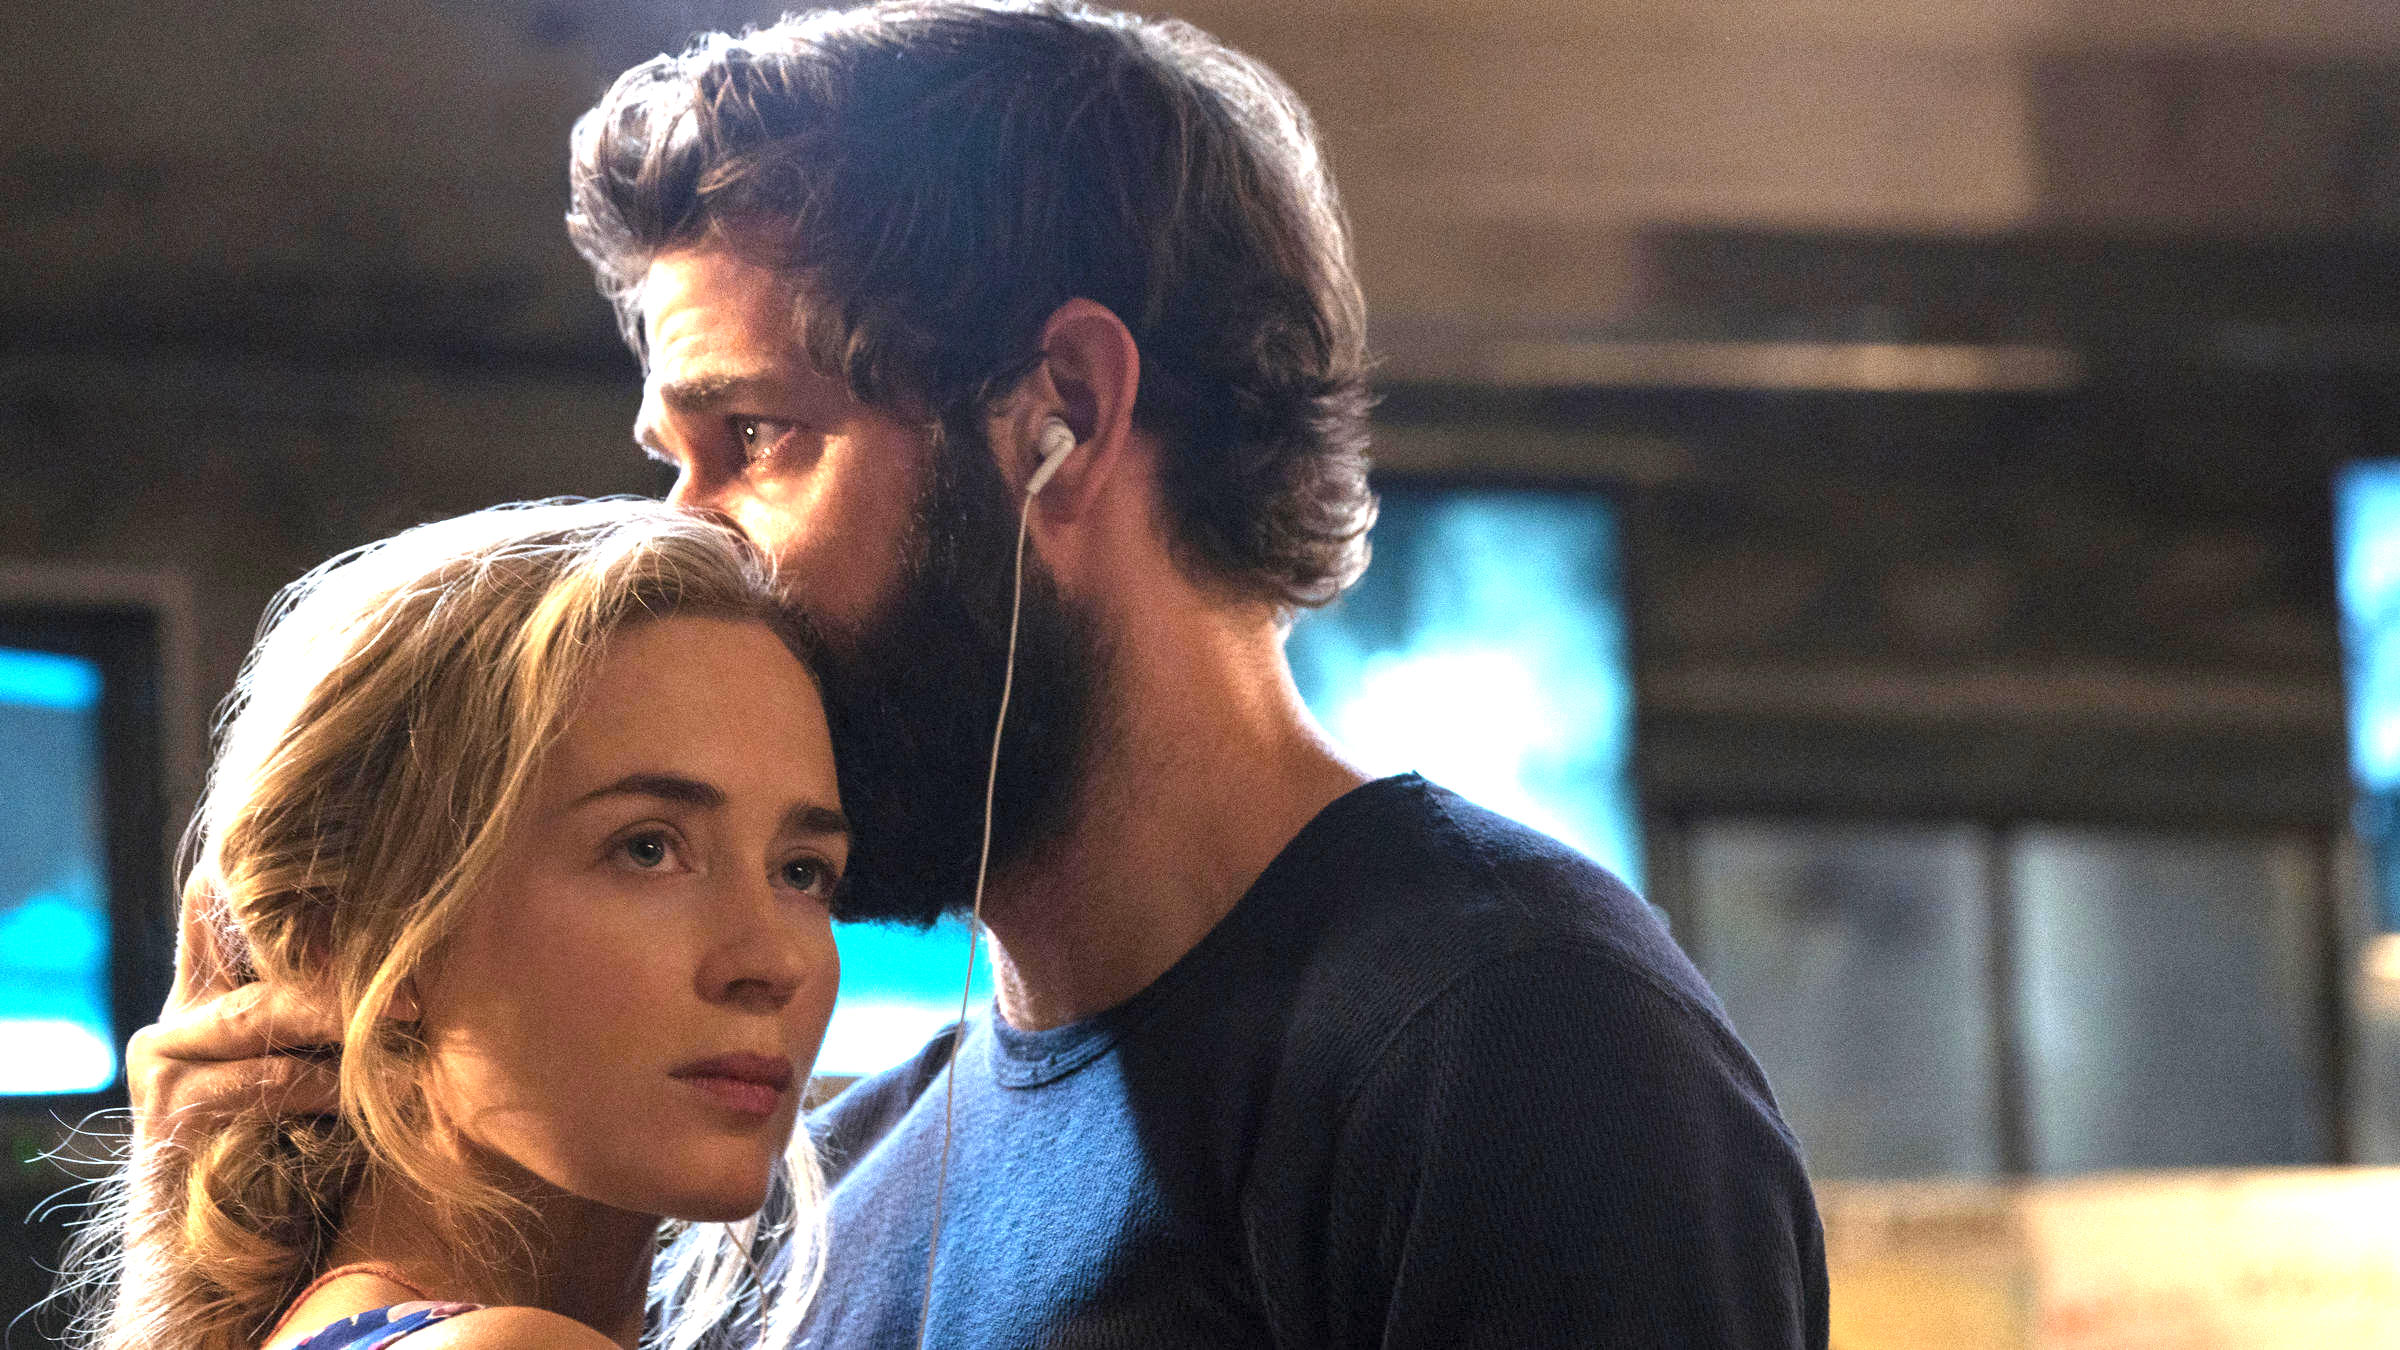 A Quiet Place Tackles The Apocalypse With Daring Realism Inverse